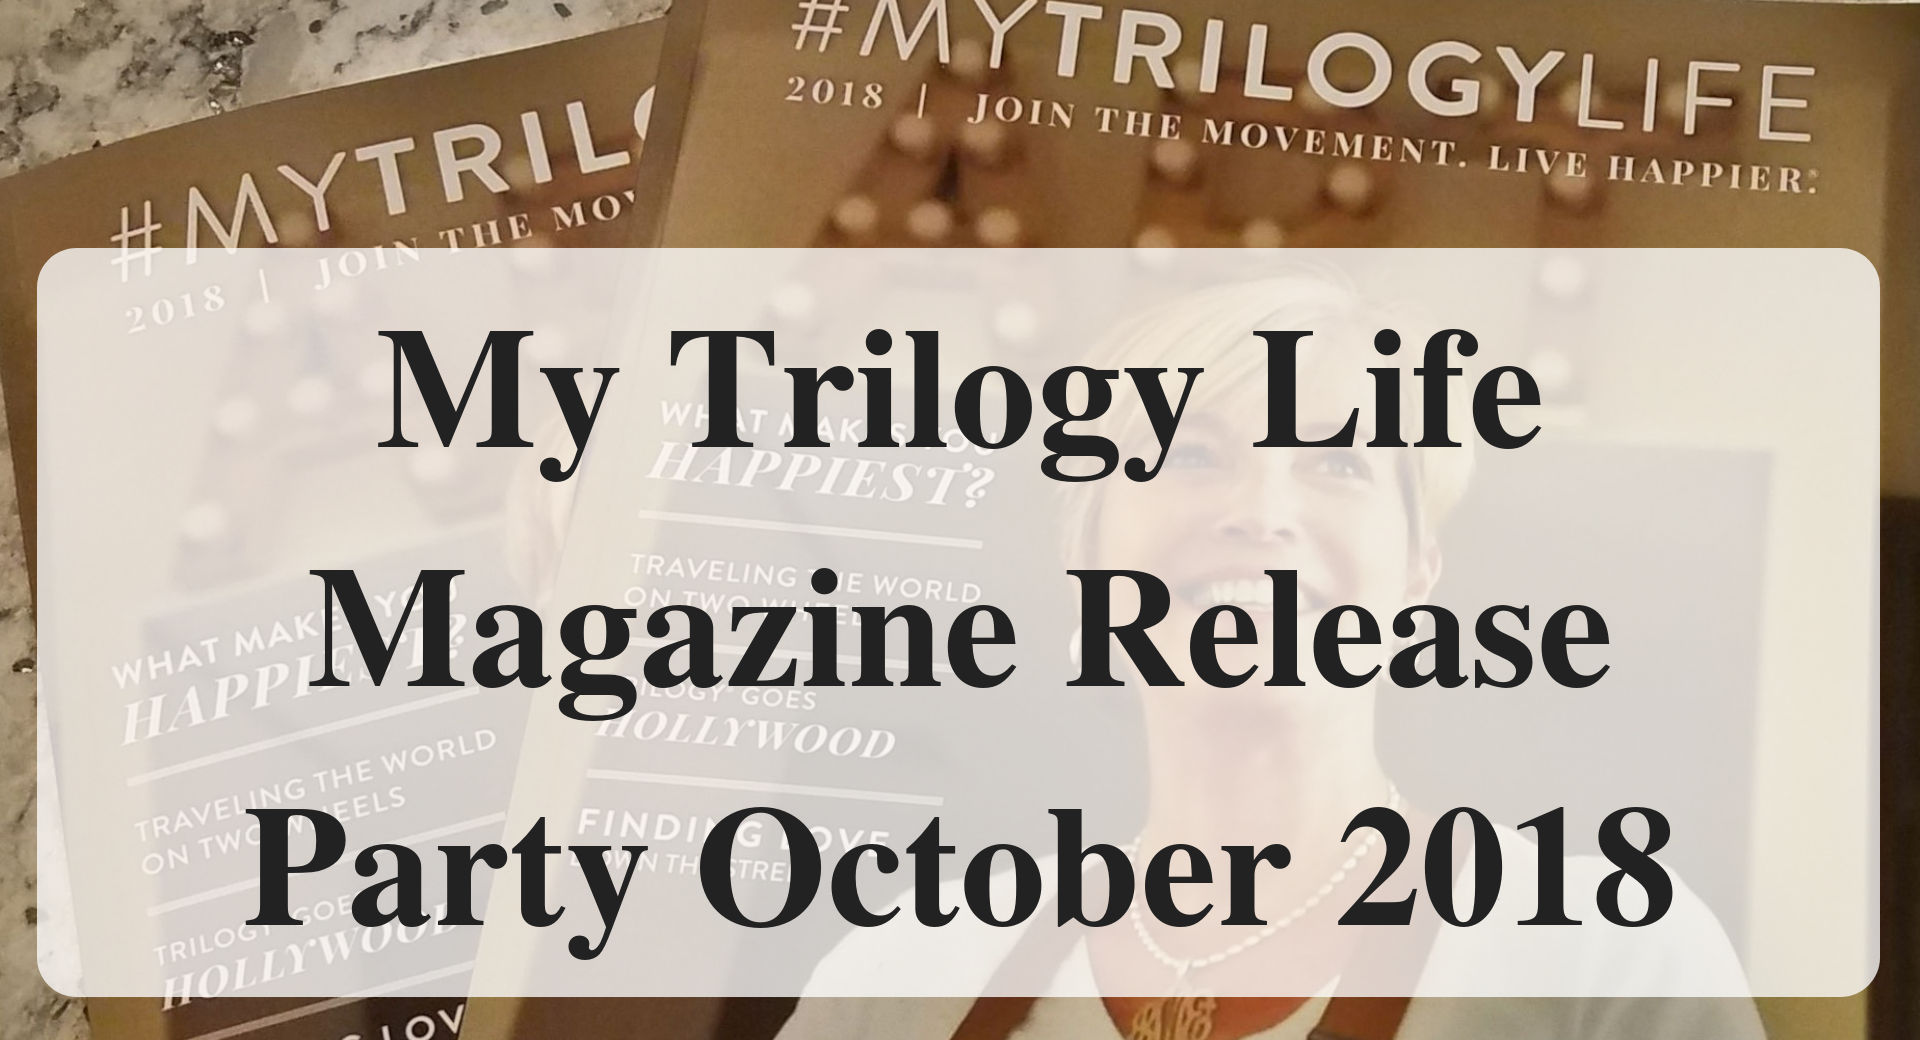 My Trilogy Life Magazine Release Party October 2018main